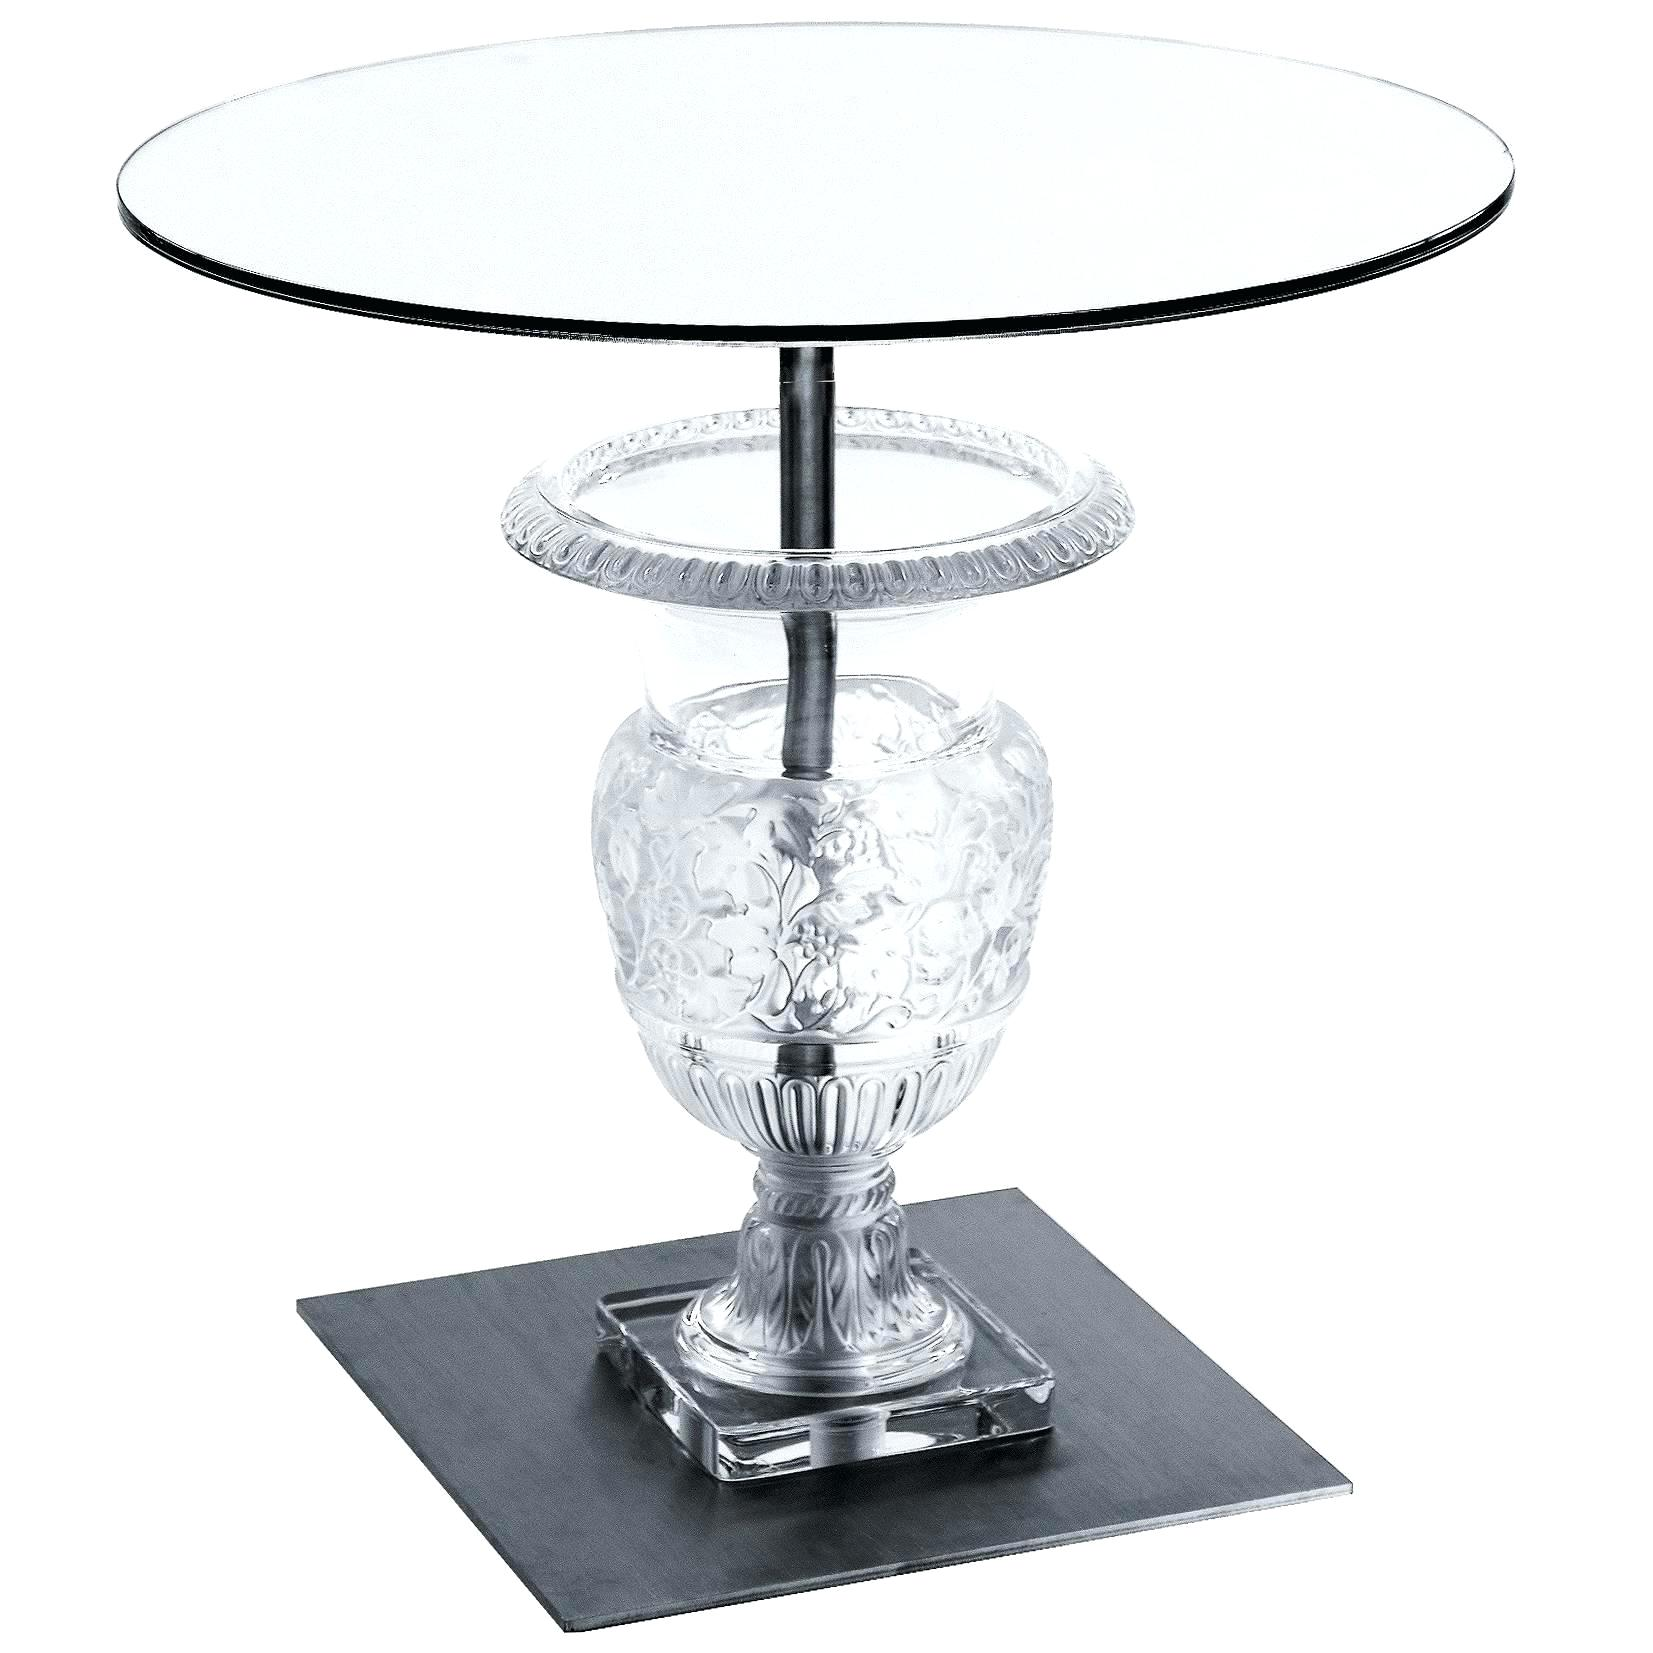 pedestal end table accent black target clear crystal side for tall white simplify oval glass dining set harveys bedroom furniture wicker chairs transparent antique console wide